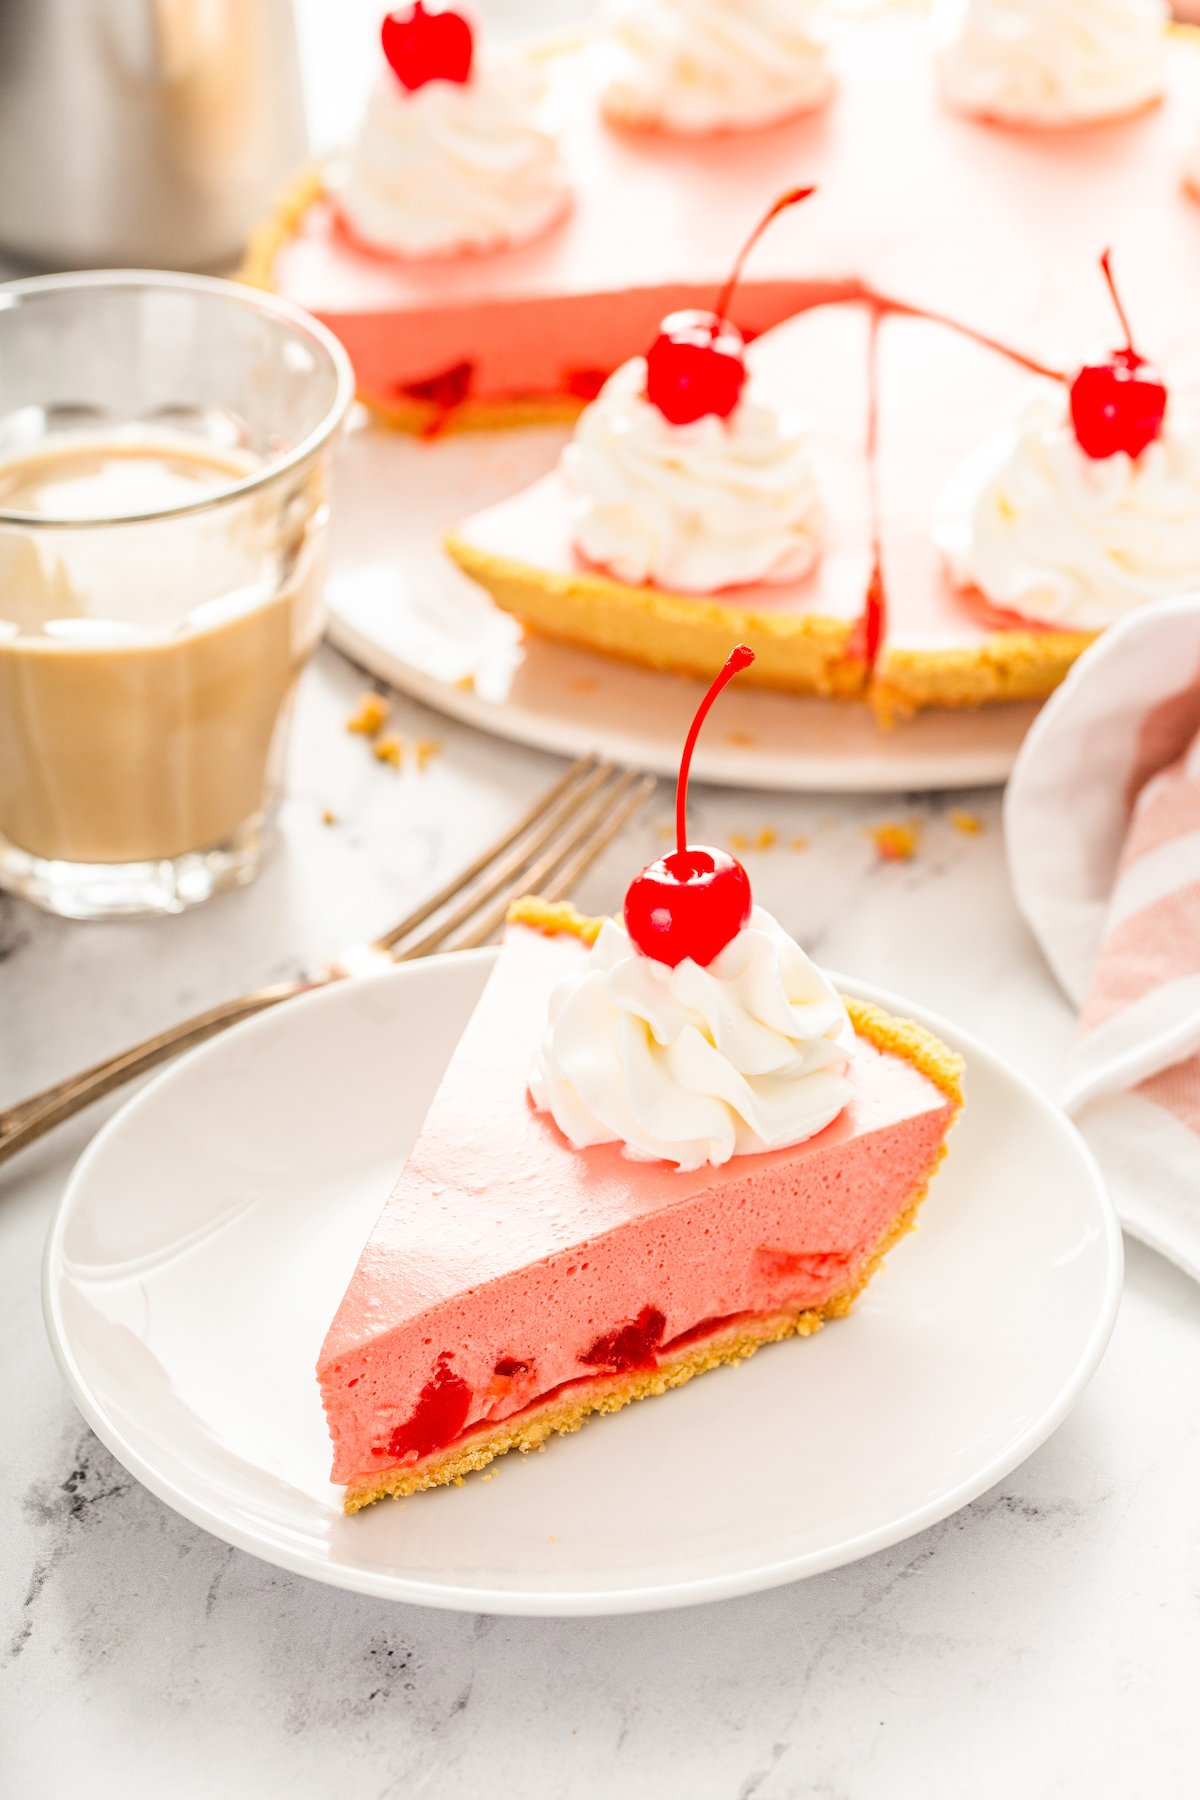 A slice of cherry jello pie on a white plate with the full pie behind it in the background.